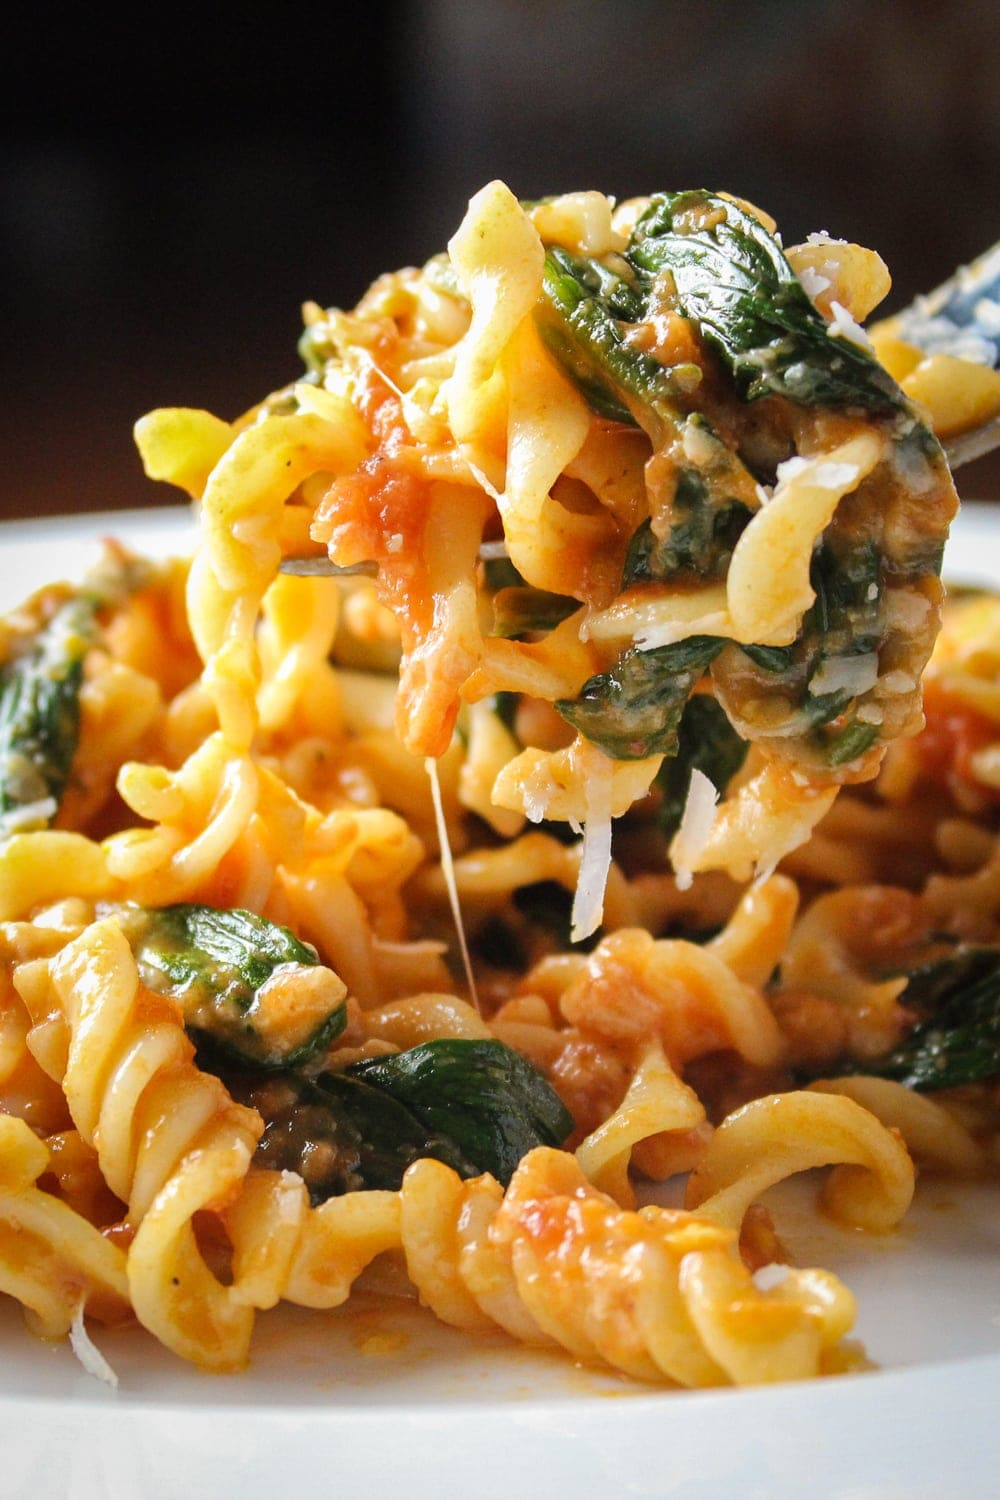 tomato spinach pasta on plate with bread p1